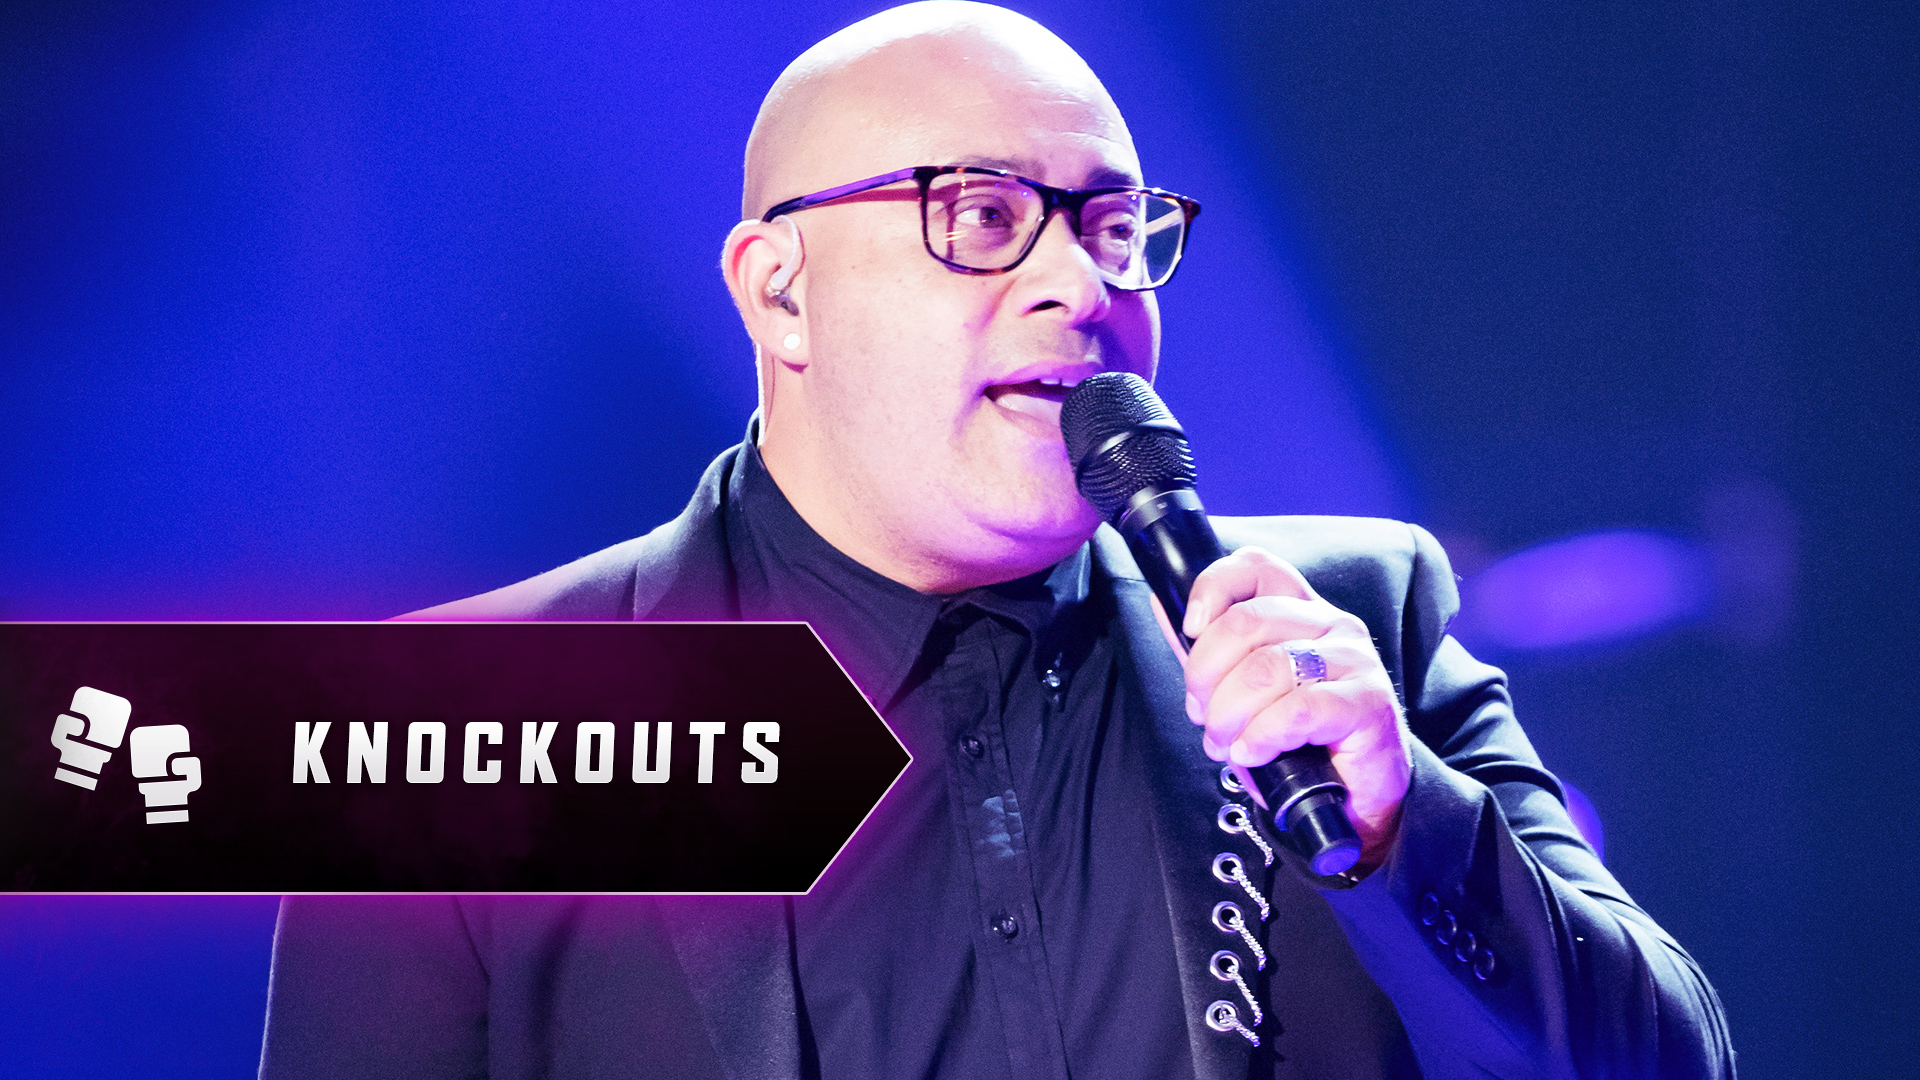 The Knockouts: Burcell Taka 'Emotions'